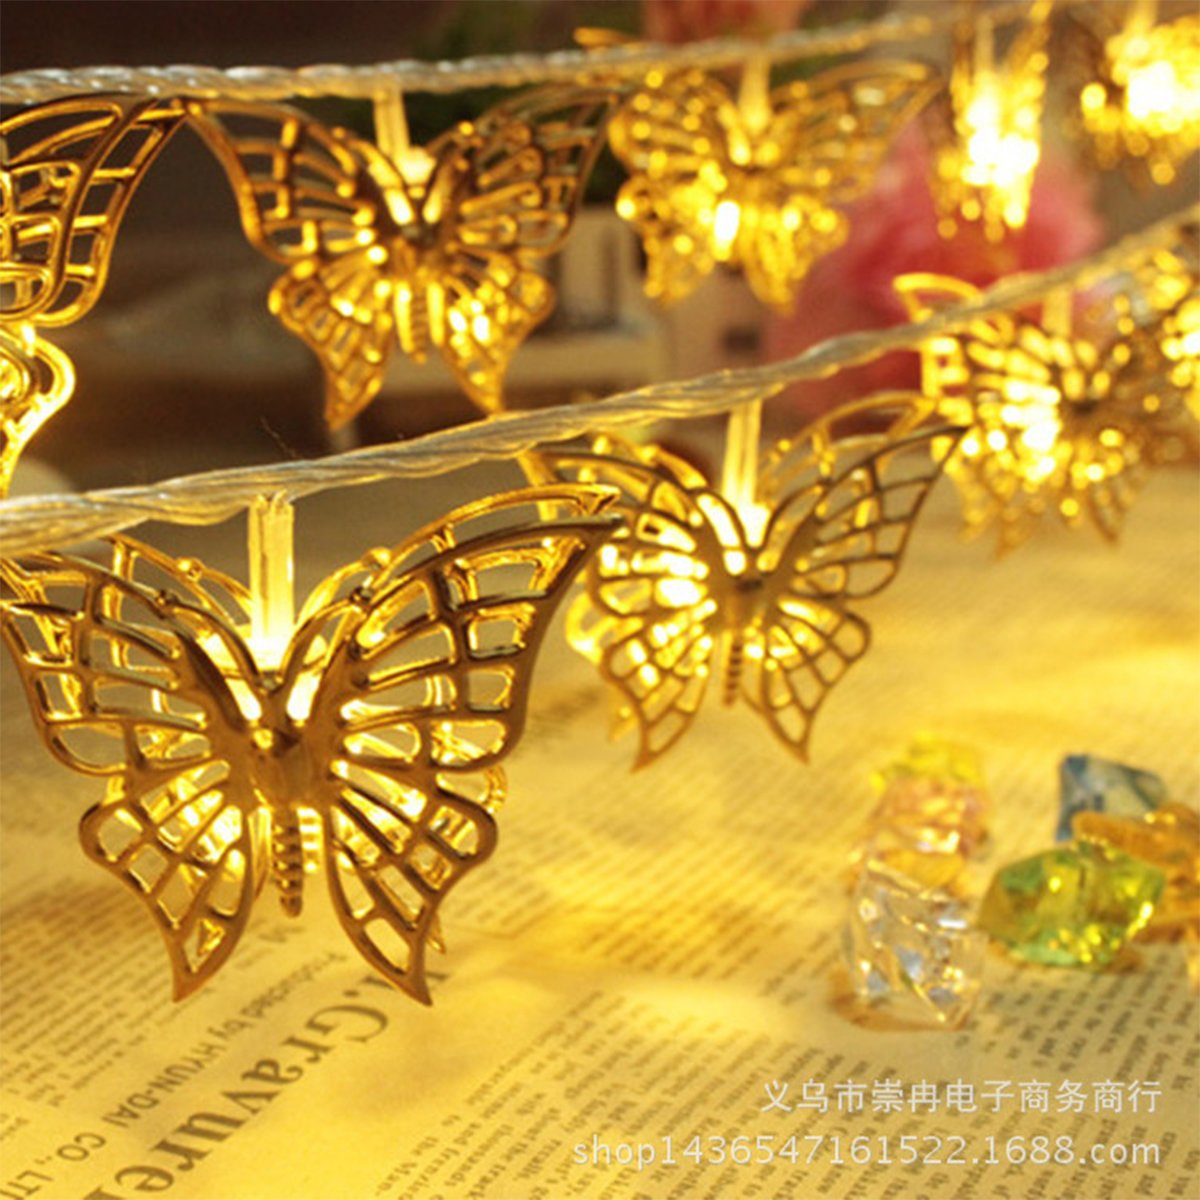 fantastic me 10ft 20 LED Iron Butterfly Fairy String Lights Night Lamp-Battery Powered-Decoration for Home Bedroom Kids Nursery Room Christmas Tree Wedding Party Garden by fantastic me (Image #7)